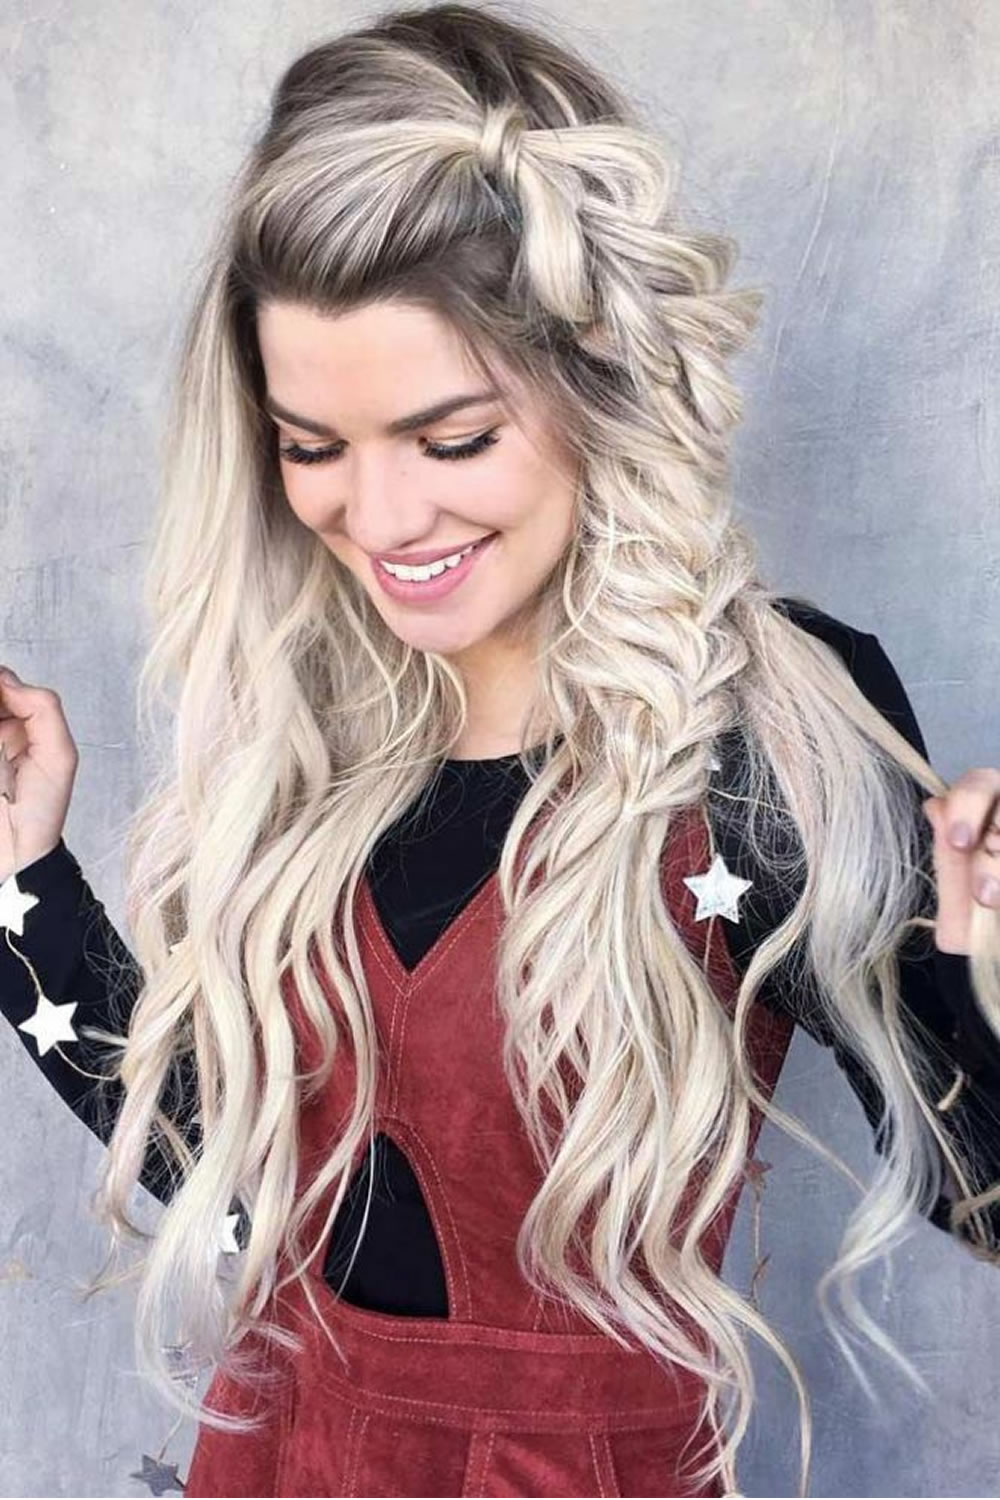 hair-styles-what-to-wear-christmas-day-dinner-holiday-outfits-winter-blonde-braid-long-hair-side.jpg